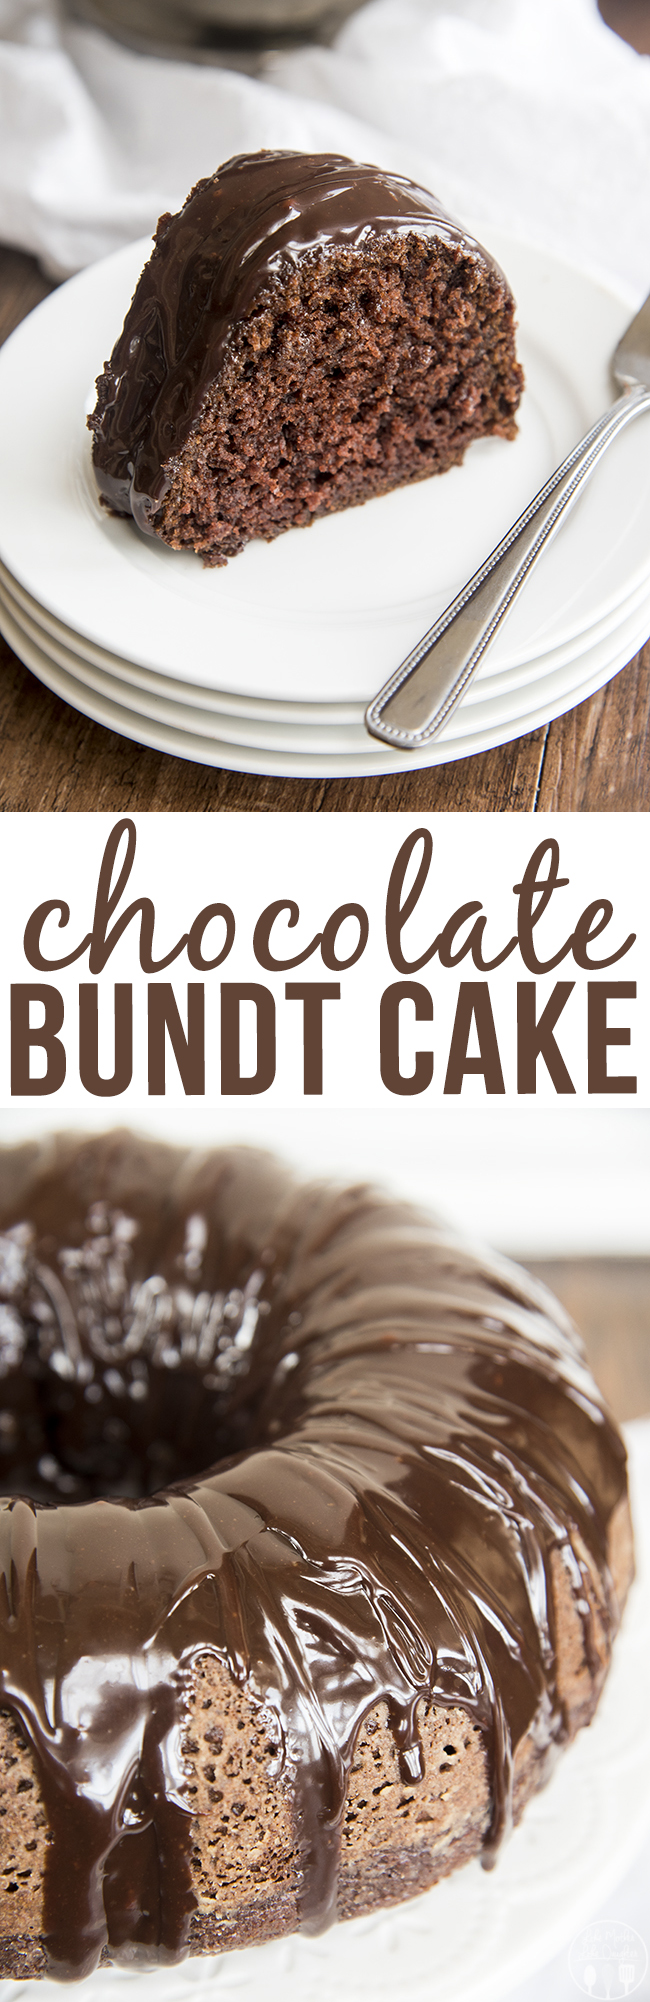 Chocolate Bundt Cake - This is the best chocolate cake ever. Its perfectly moist, sweet, rich and chocolatey with the best chocolate ganache on top, just like a chocolate cake should be.